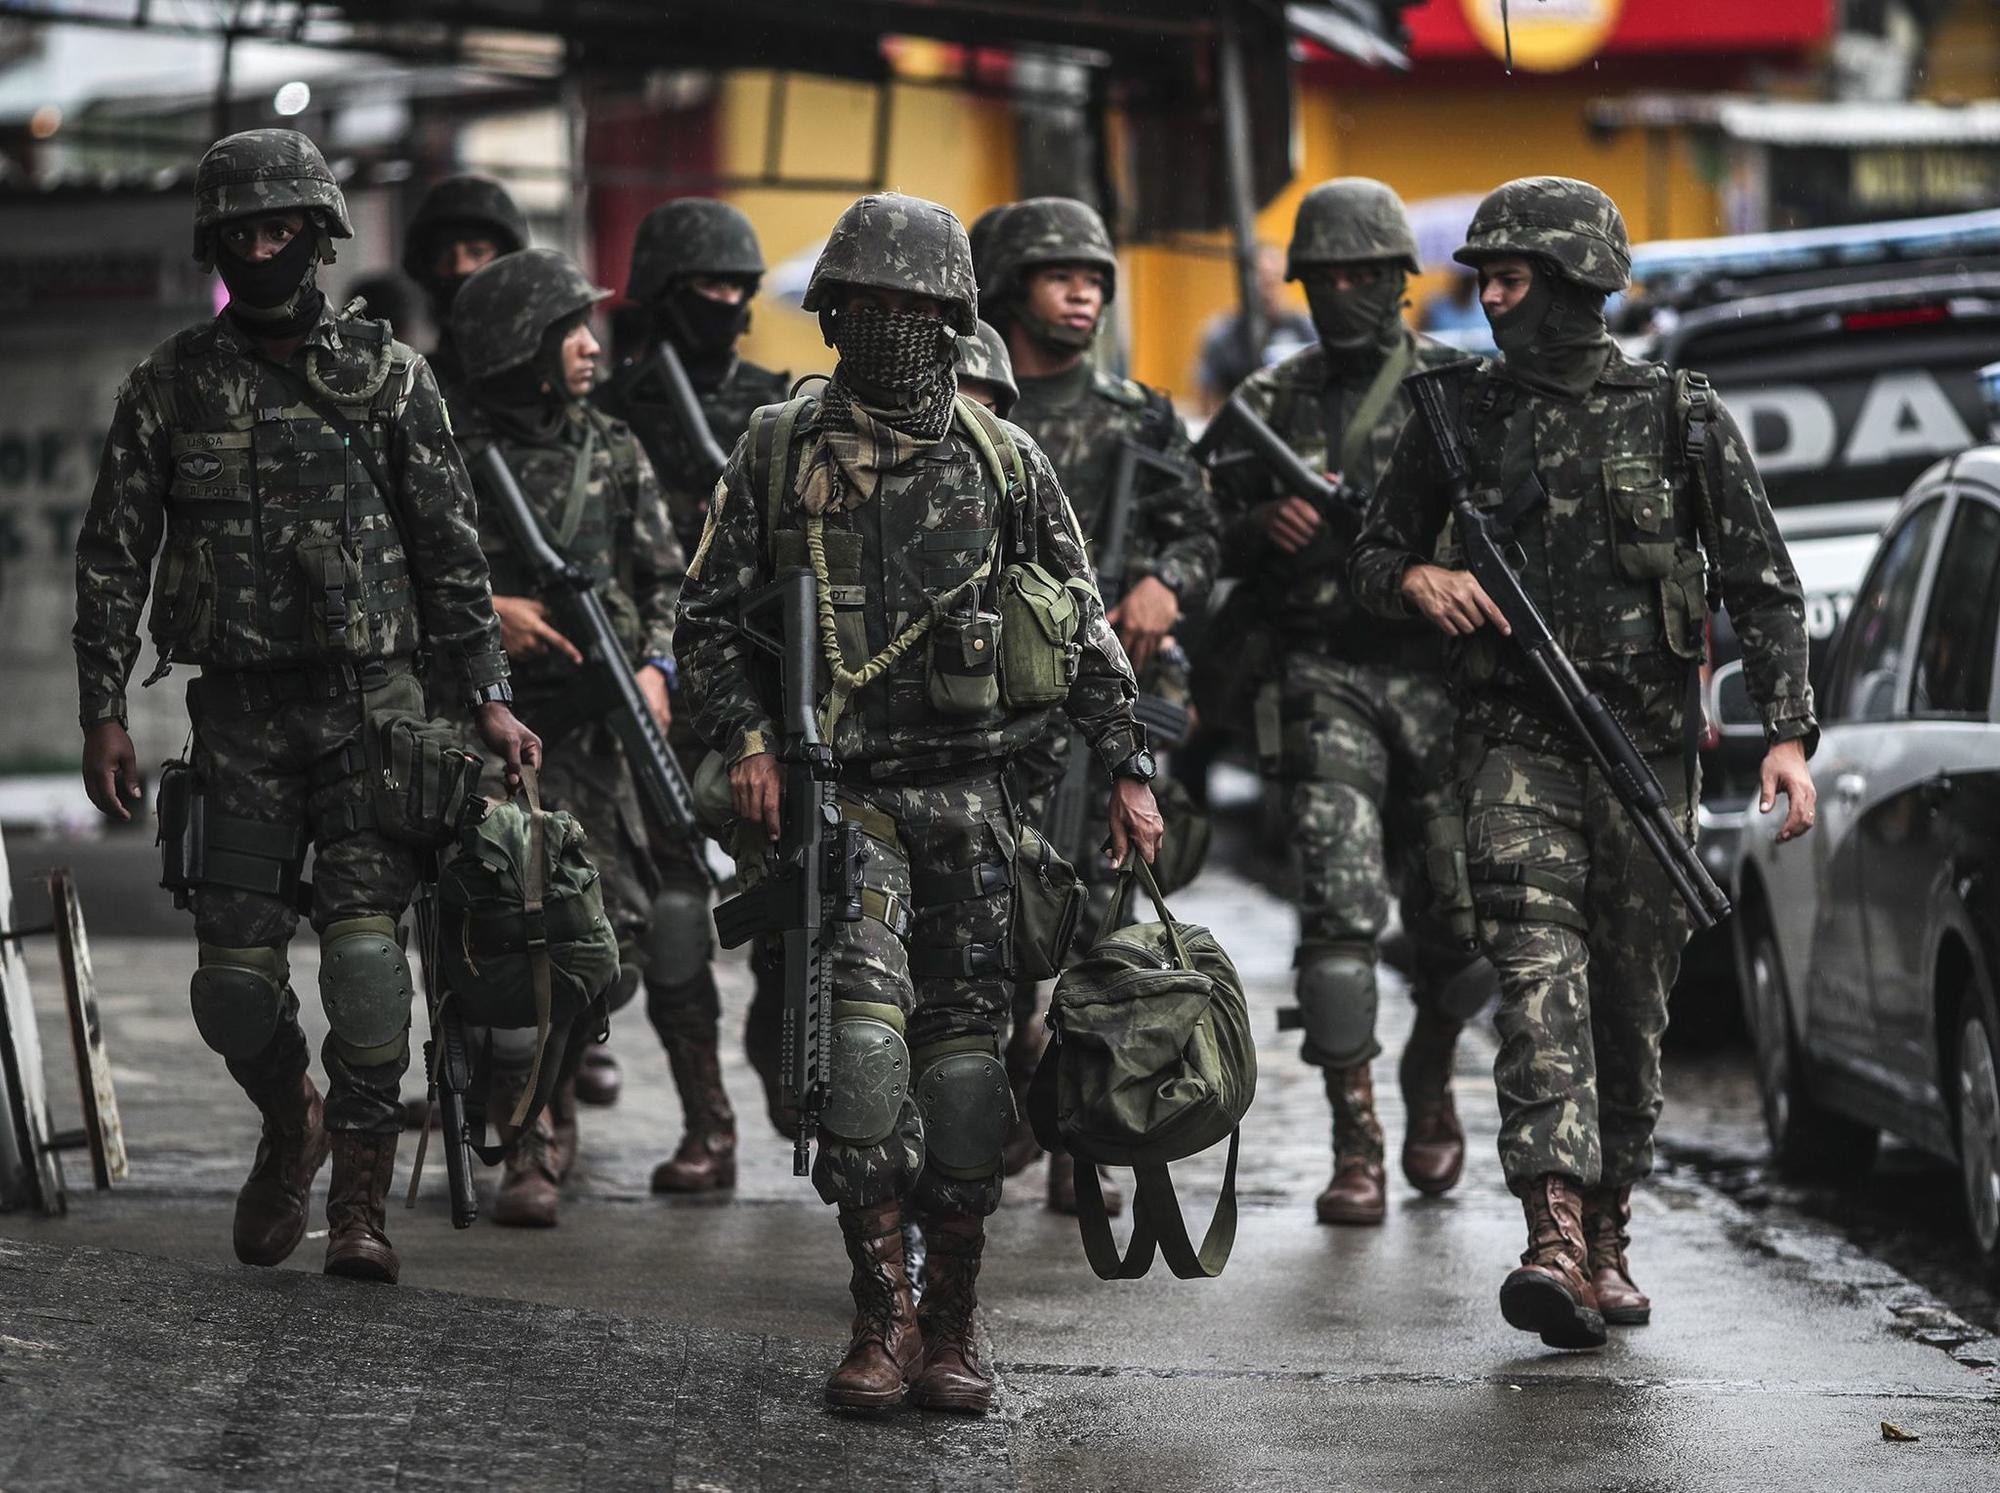 Military controls in Rio de Janeiro against organized crime, Brazil - 23 Feb 2018